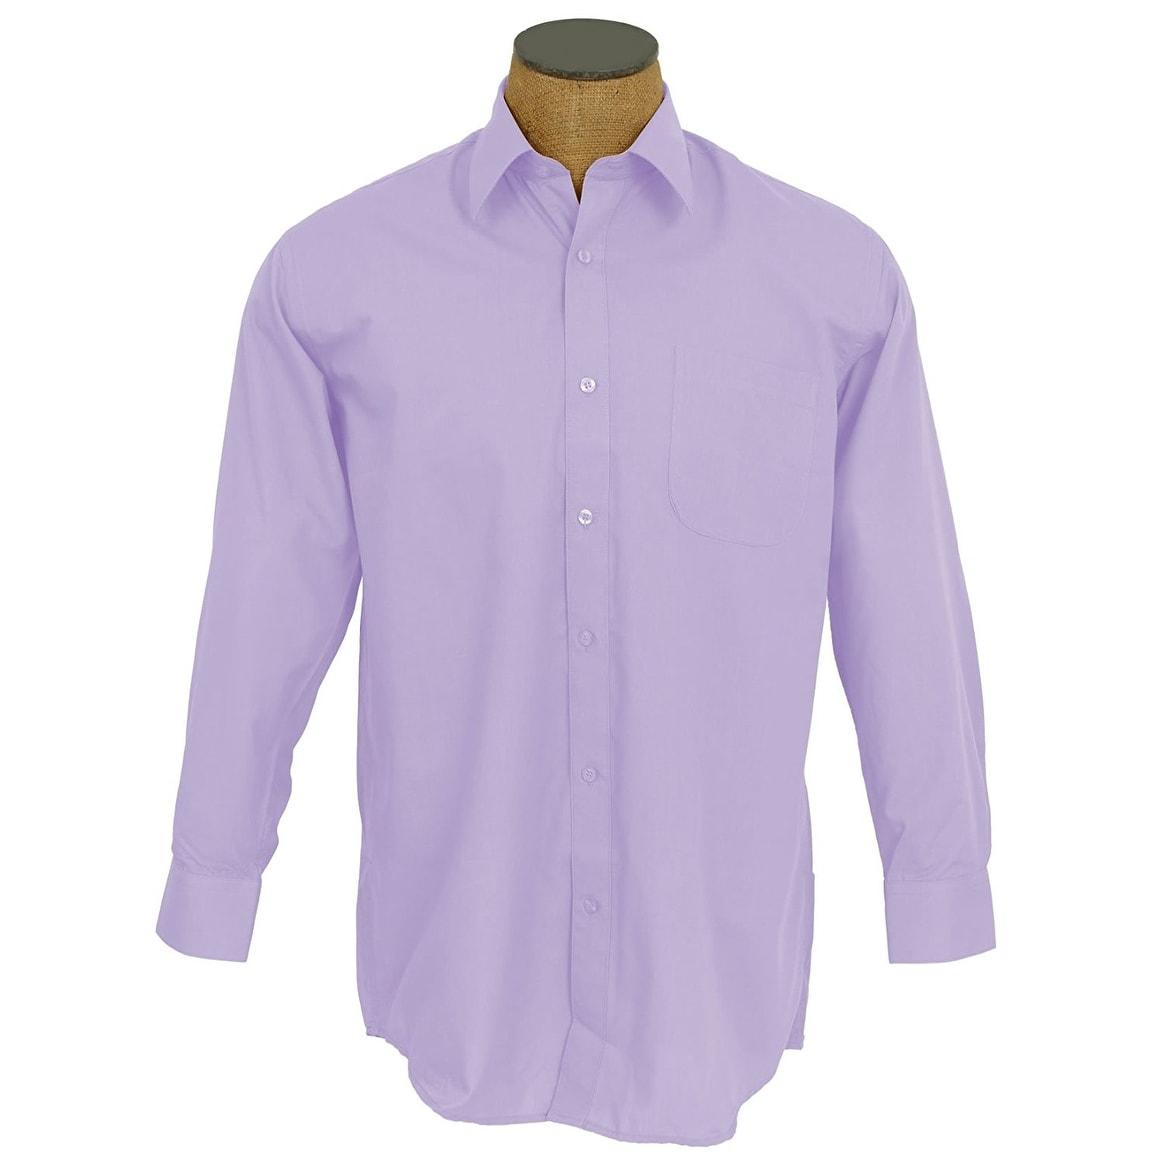 Shop Boys Solid Color Cotton Blend Dress Shirt Free Shipping On